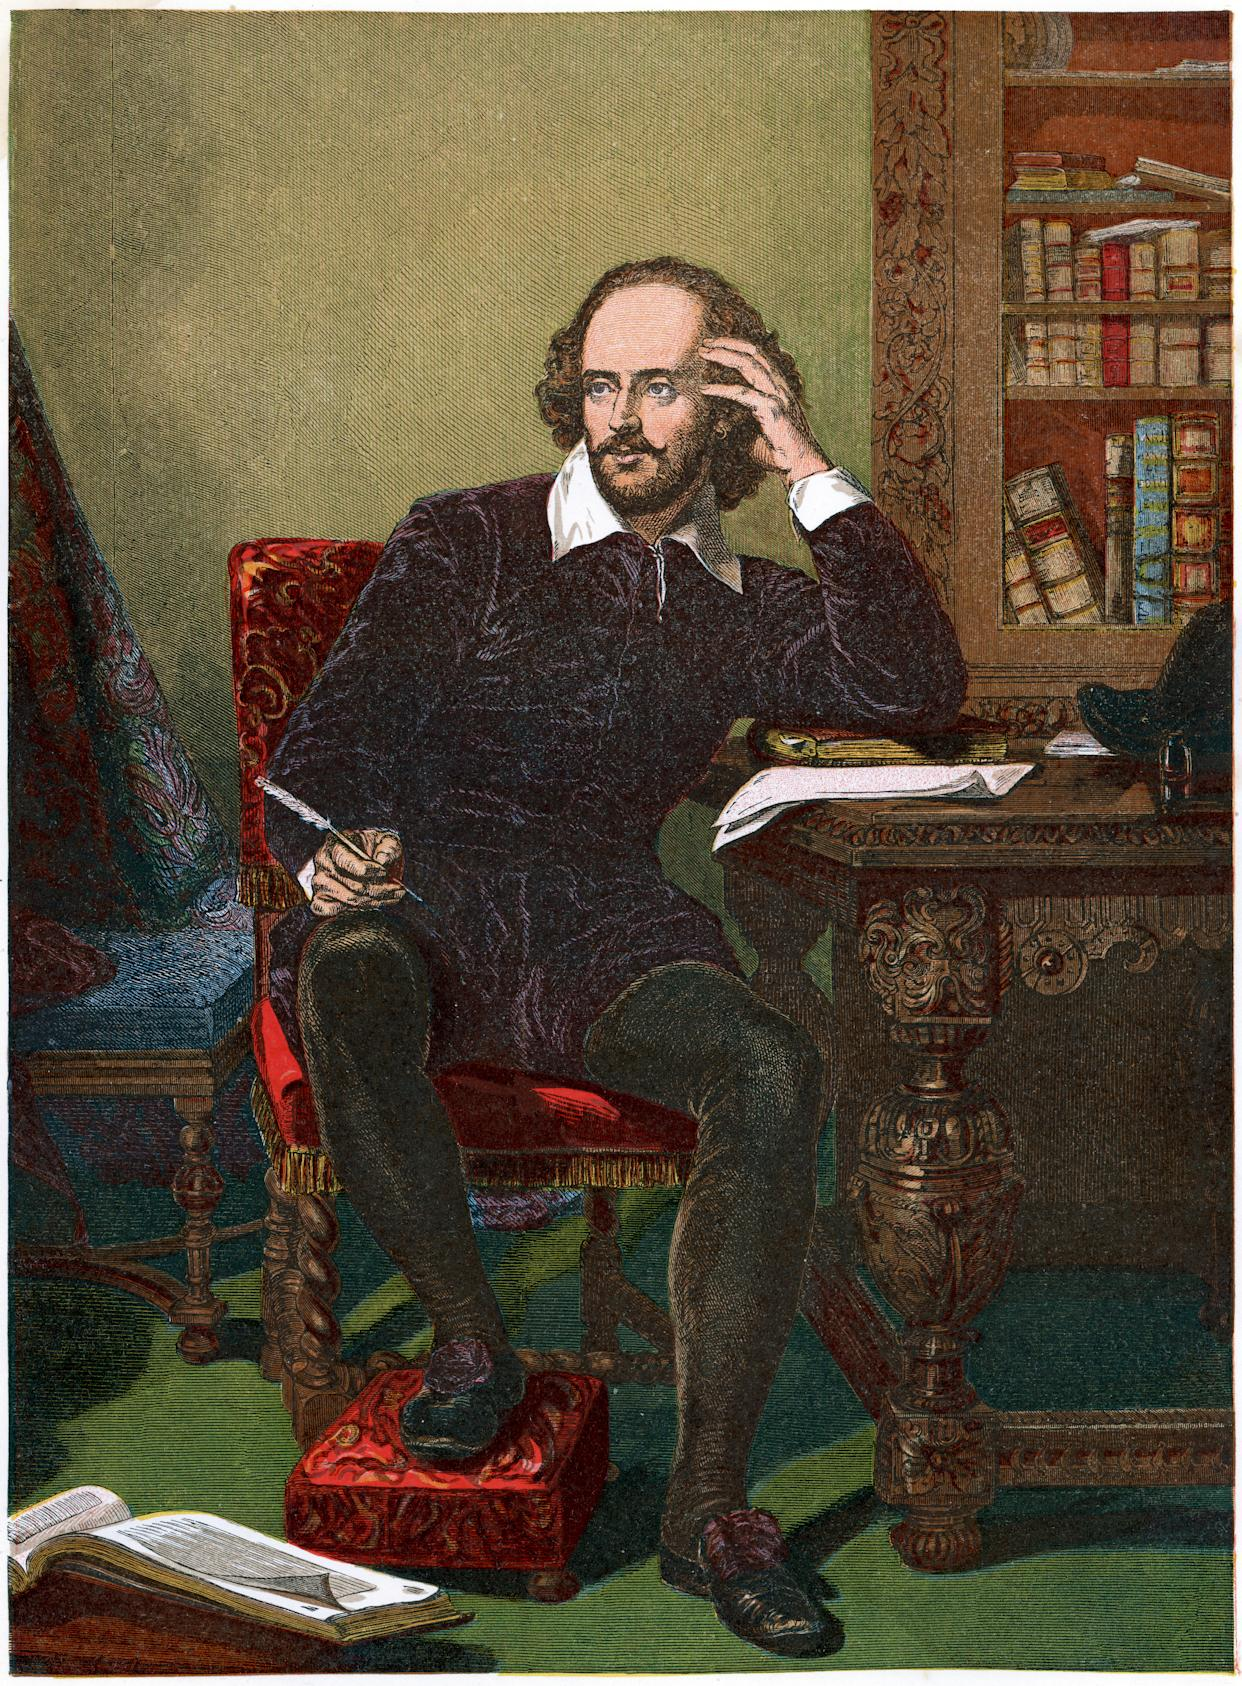 Vintage colour lithograph from 1853 of William Shakespeare, an English poet and playwright, widely regarded as the greatest writer in the English language and the world's pre-eminent dramatist.